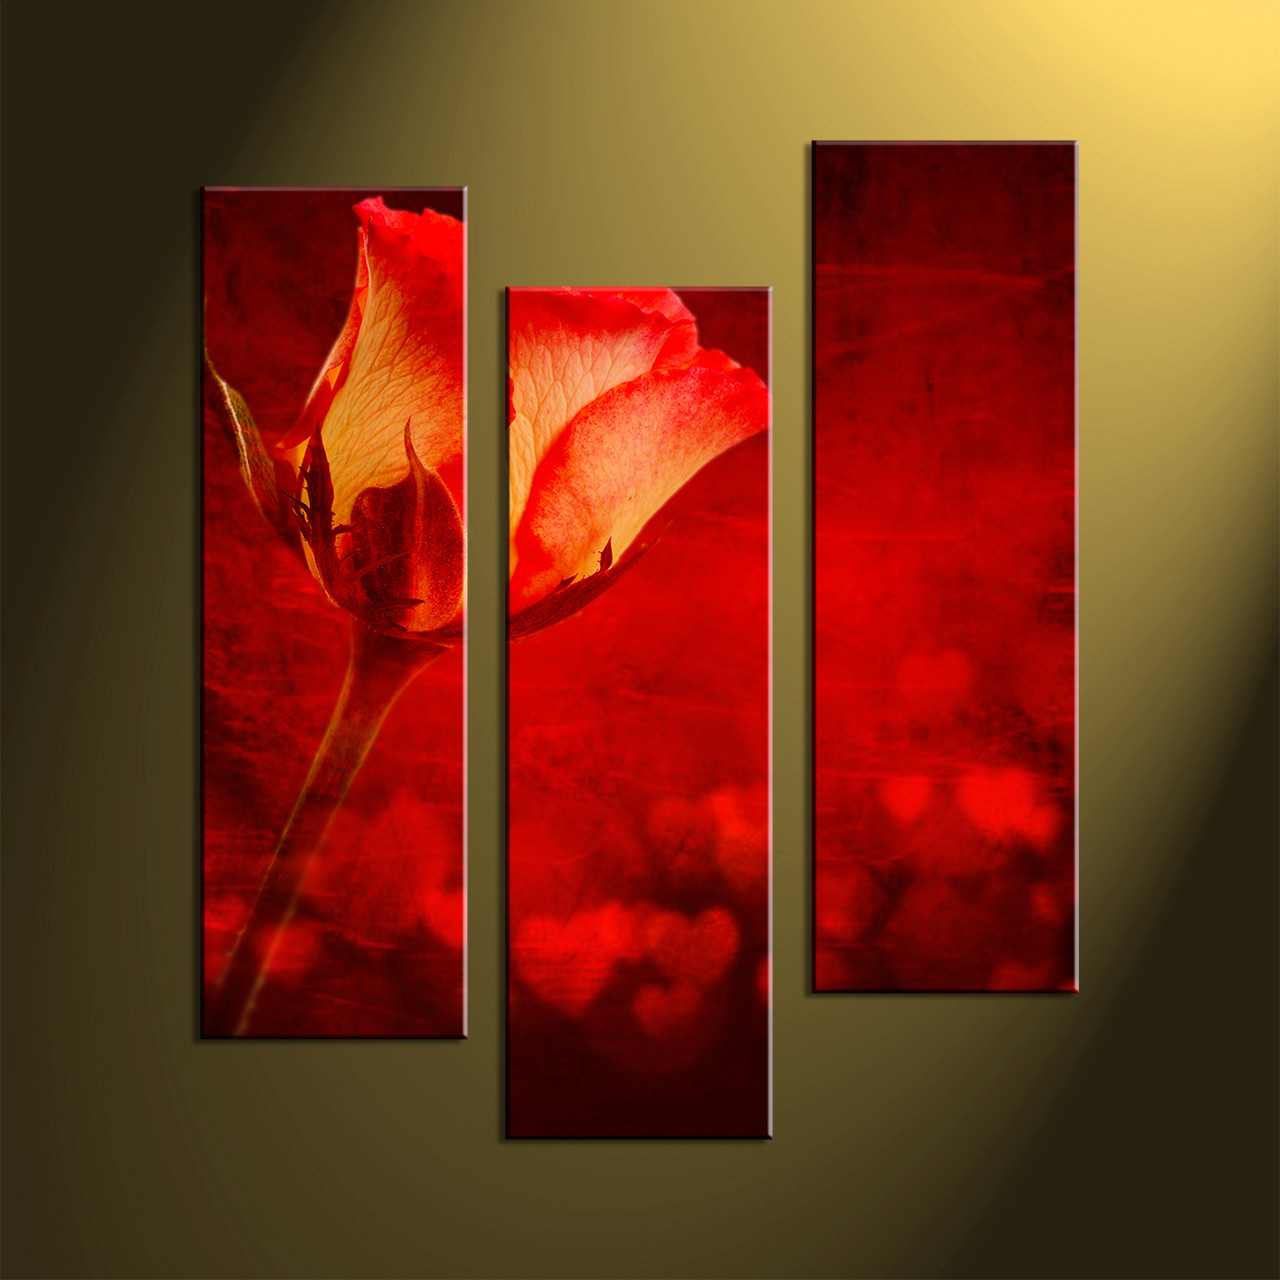 Home wall decor flower art scenery wall art 3 piece photo canvas & 3 Piece Home Decor Red Rose Canvas Pictures